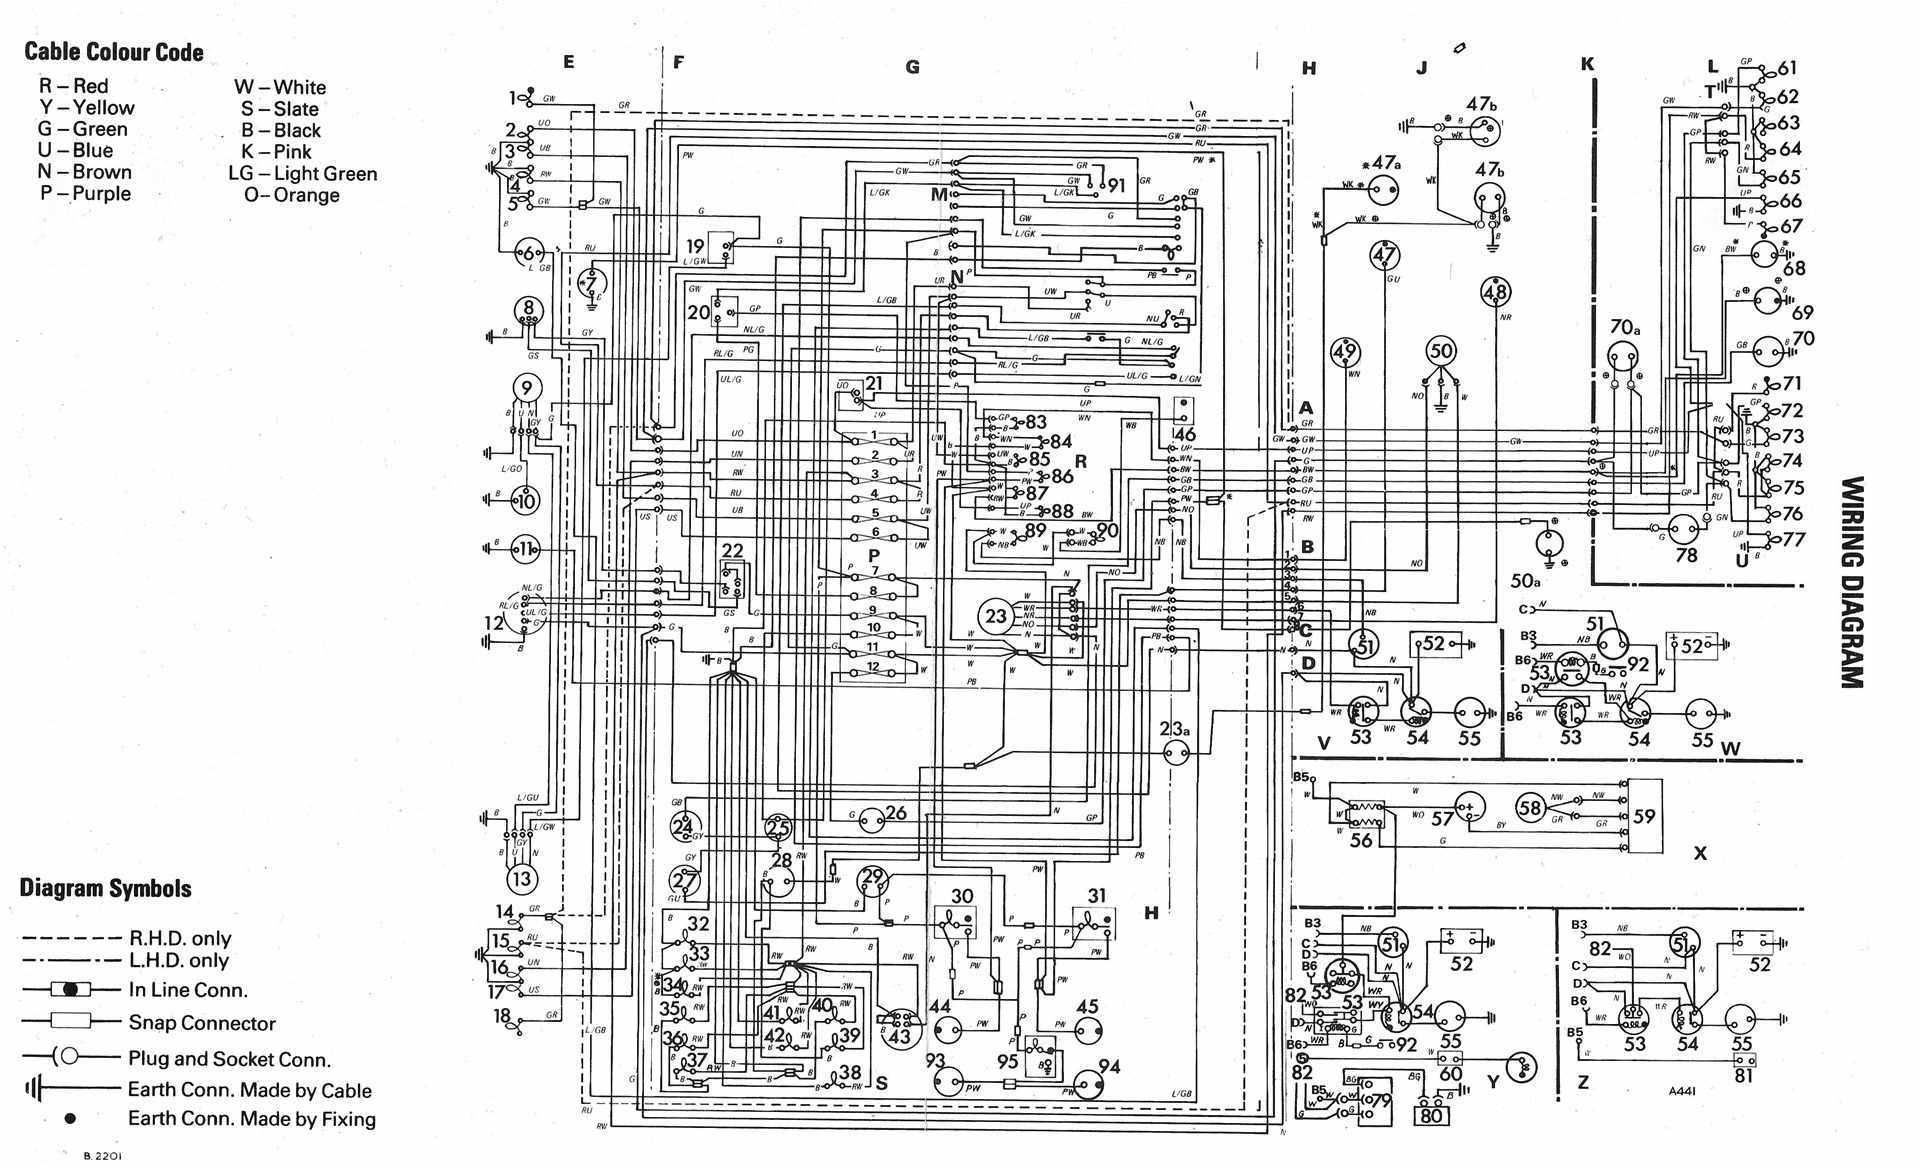 BB_5151] 1998 Vw Beetle Fuse Diagram Download DiagramKicep Istic Amenti Epsy Pead Favo Scoba Mohammedshrine Librar Wiring 101